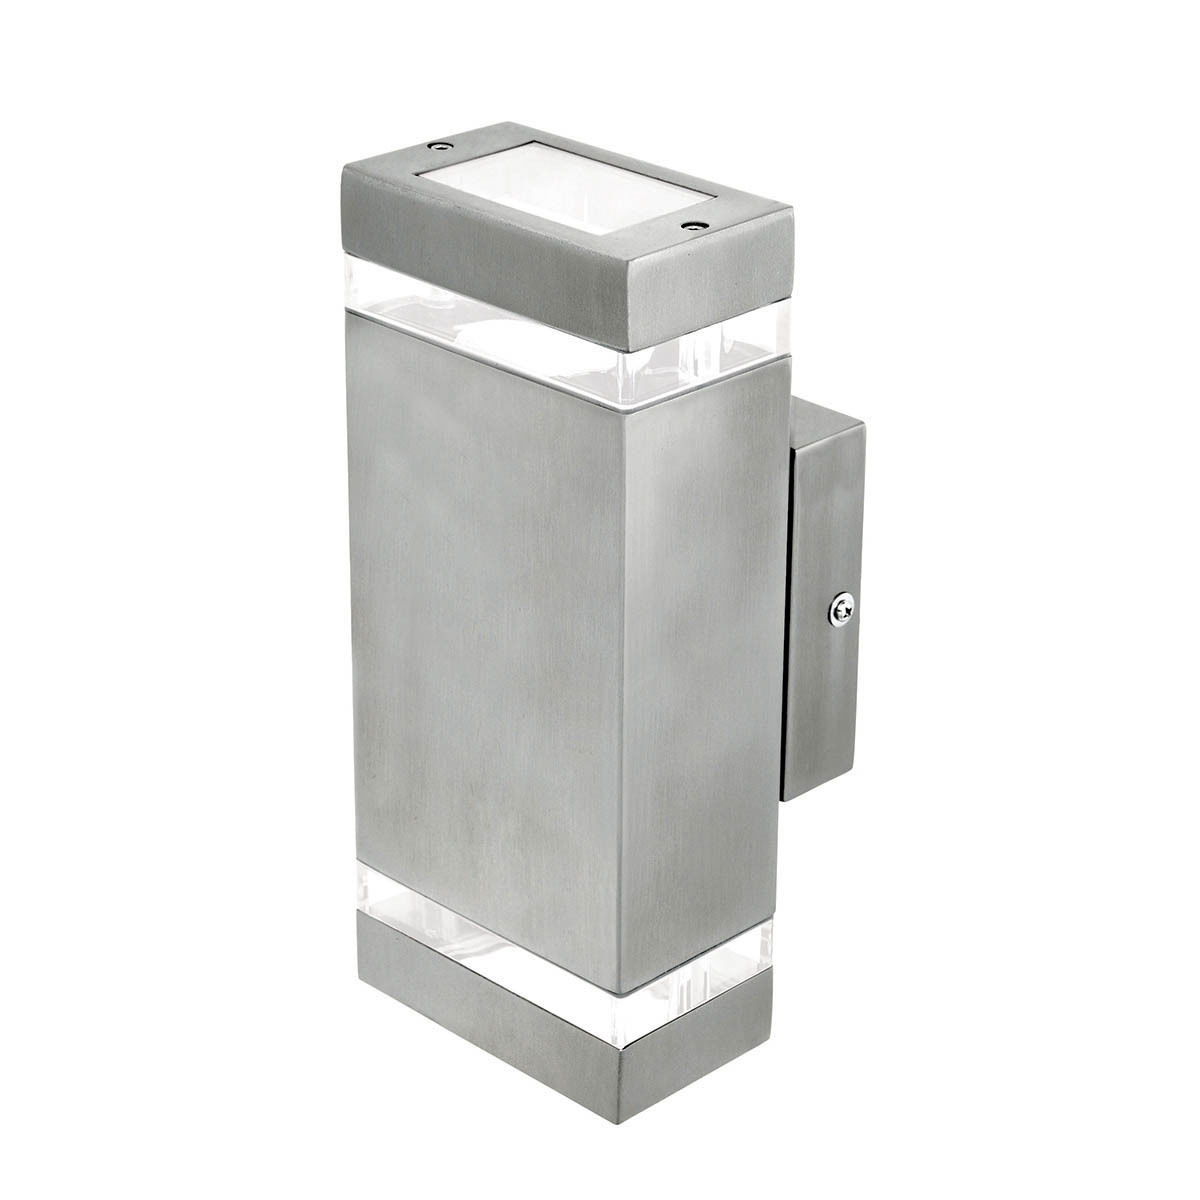 rectangular up down exterior wall light charcoal stainless steel gu10 ebay. Black Bedroom Furniture Sets. Home Design Ideas